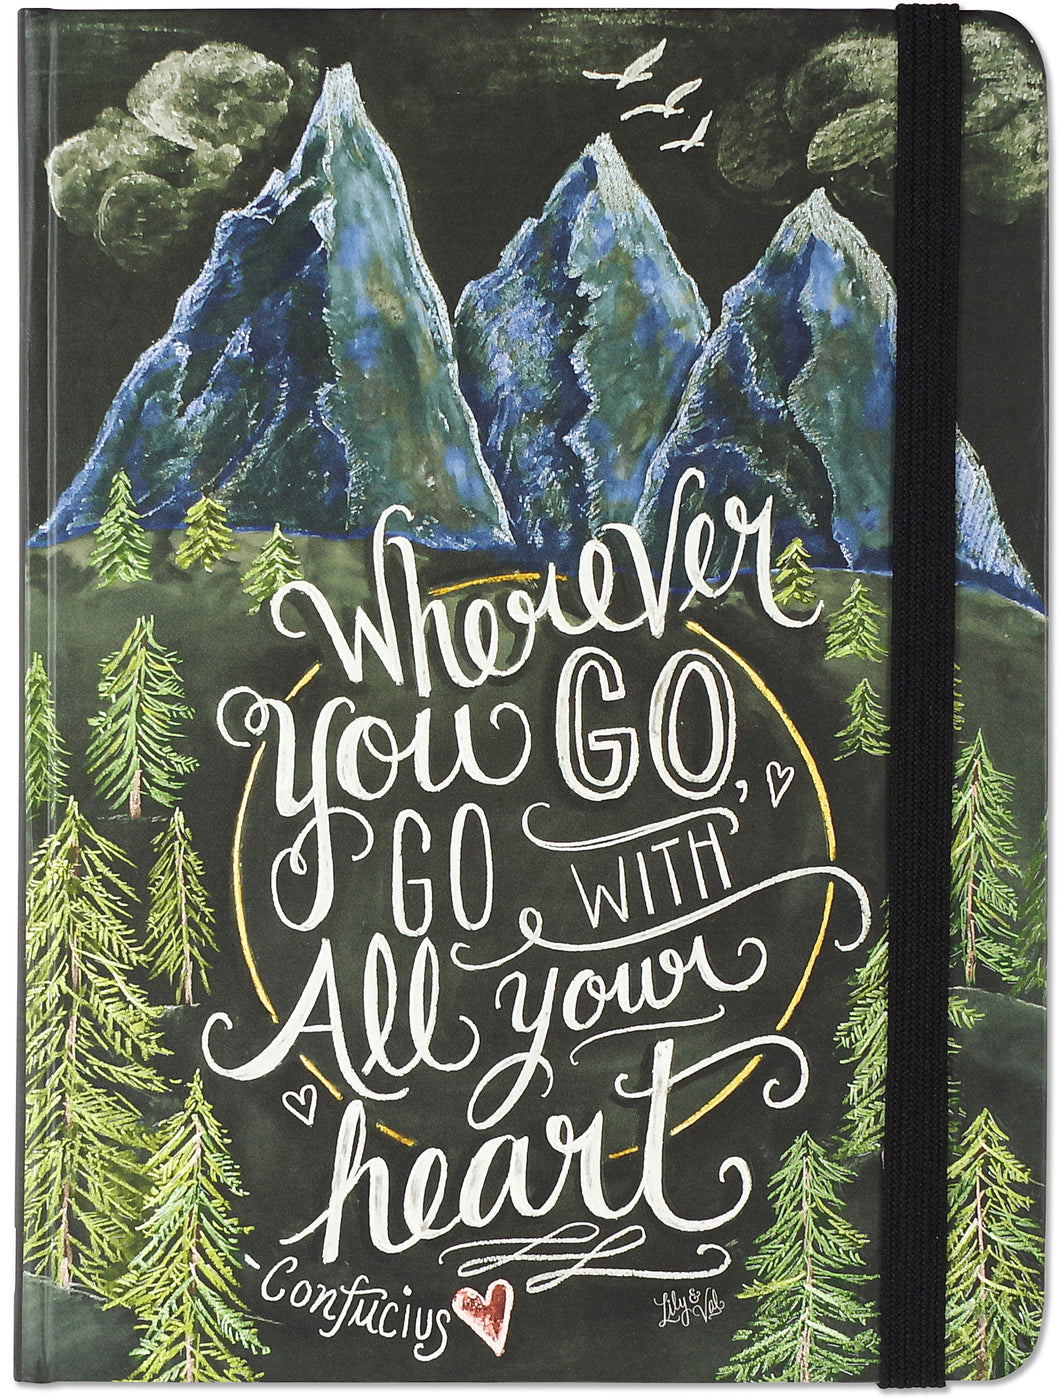 Wherever you go, go with your Heart Journal - Medium - دفتر أينما تذه إذهب مع قلبك وسط